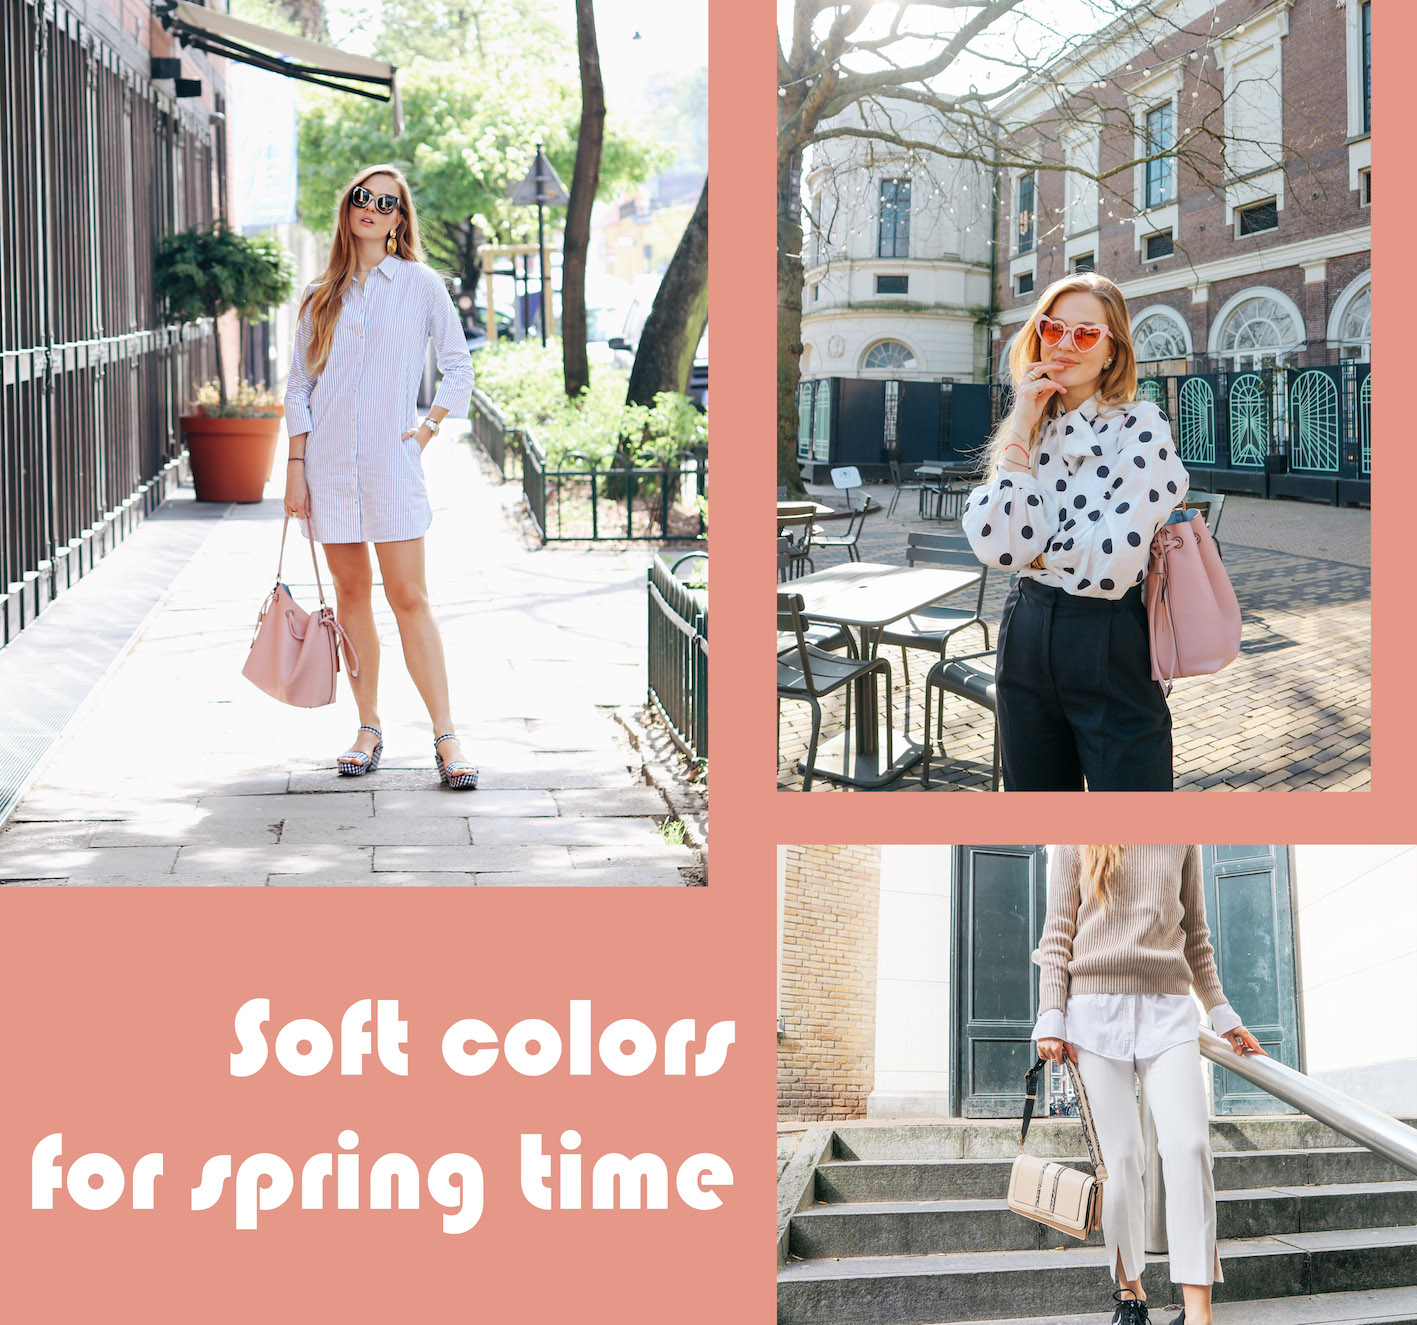 floortjeloves, instagram, instagram outfits april, instagram outfits, outfits April, instagram recap, recap, fashion recap